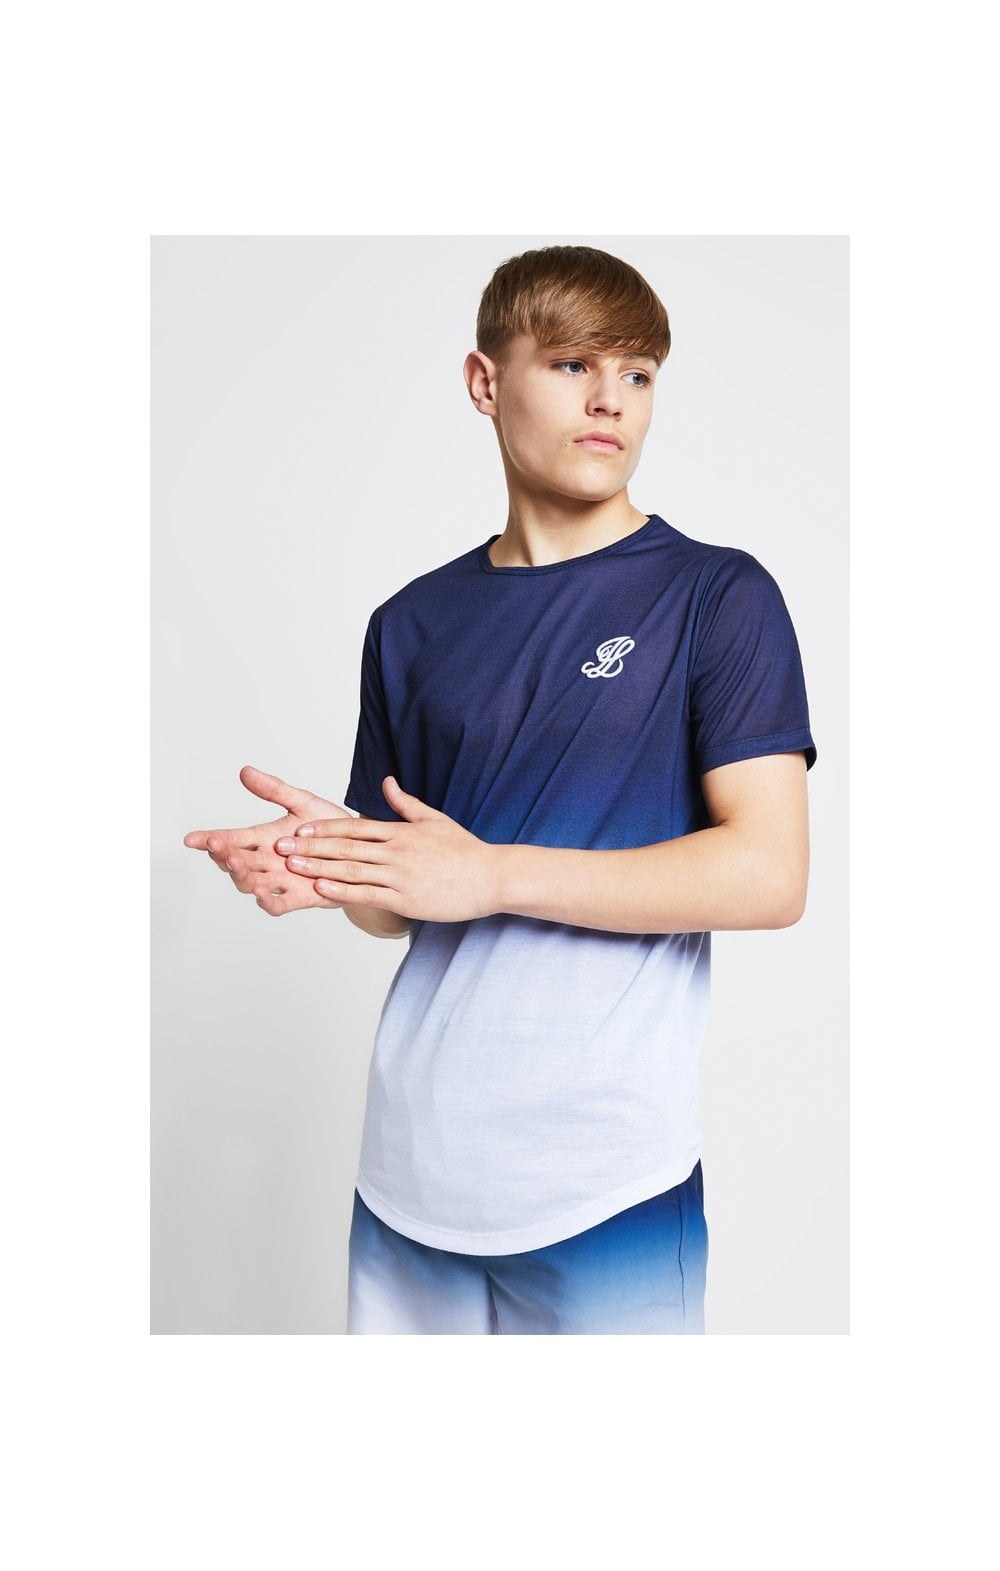 Load image into Gallery viewer, Illusive London Fade Tee - Navy & White (3)